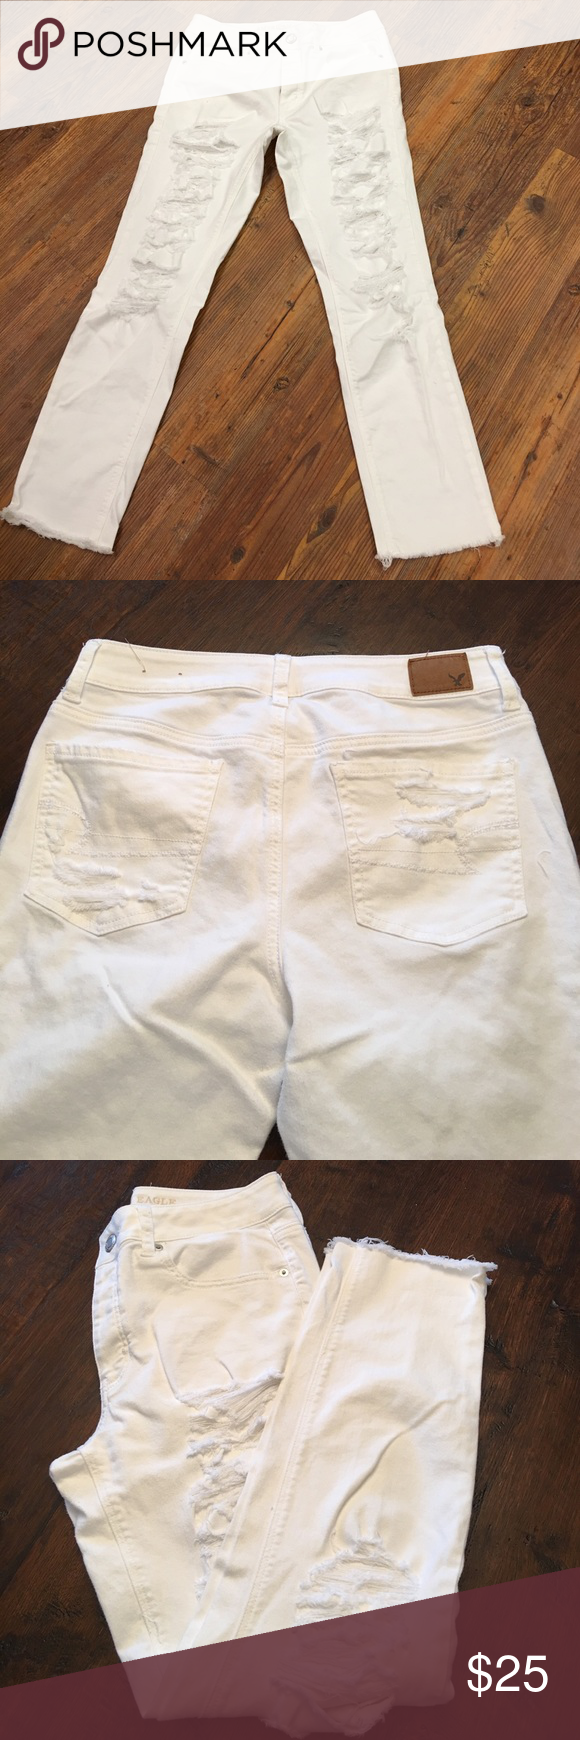 American Eagle TomGirl size 8 jeans American Eagle TomGirl size 8 white jeans. Stretch. 4 button fly. Rise approx. 9.5 Inseam approx 27. Made in China. 98% cotton, 2% elastase. American Eagle Outfitters Jeans Skinny